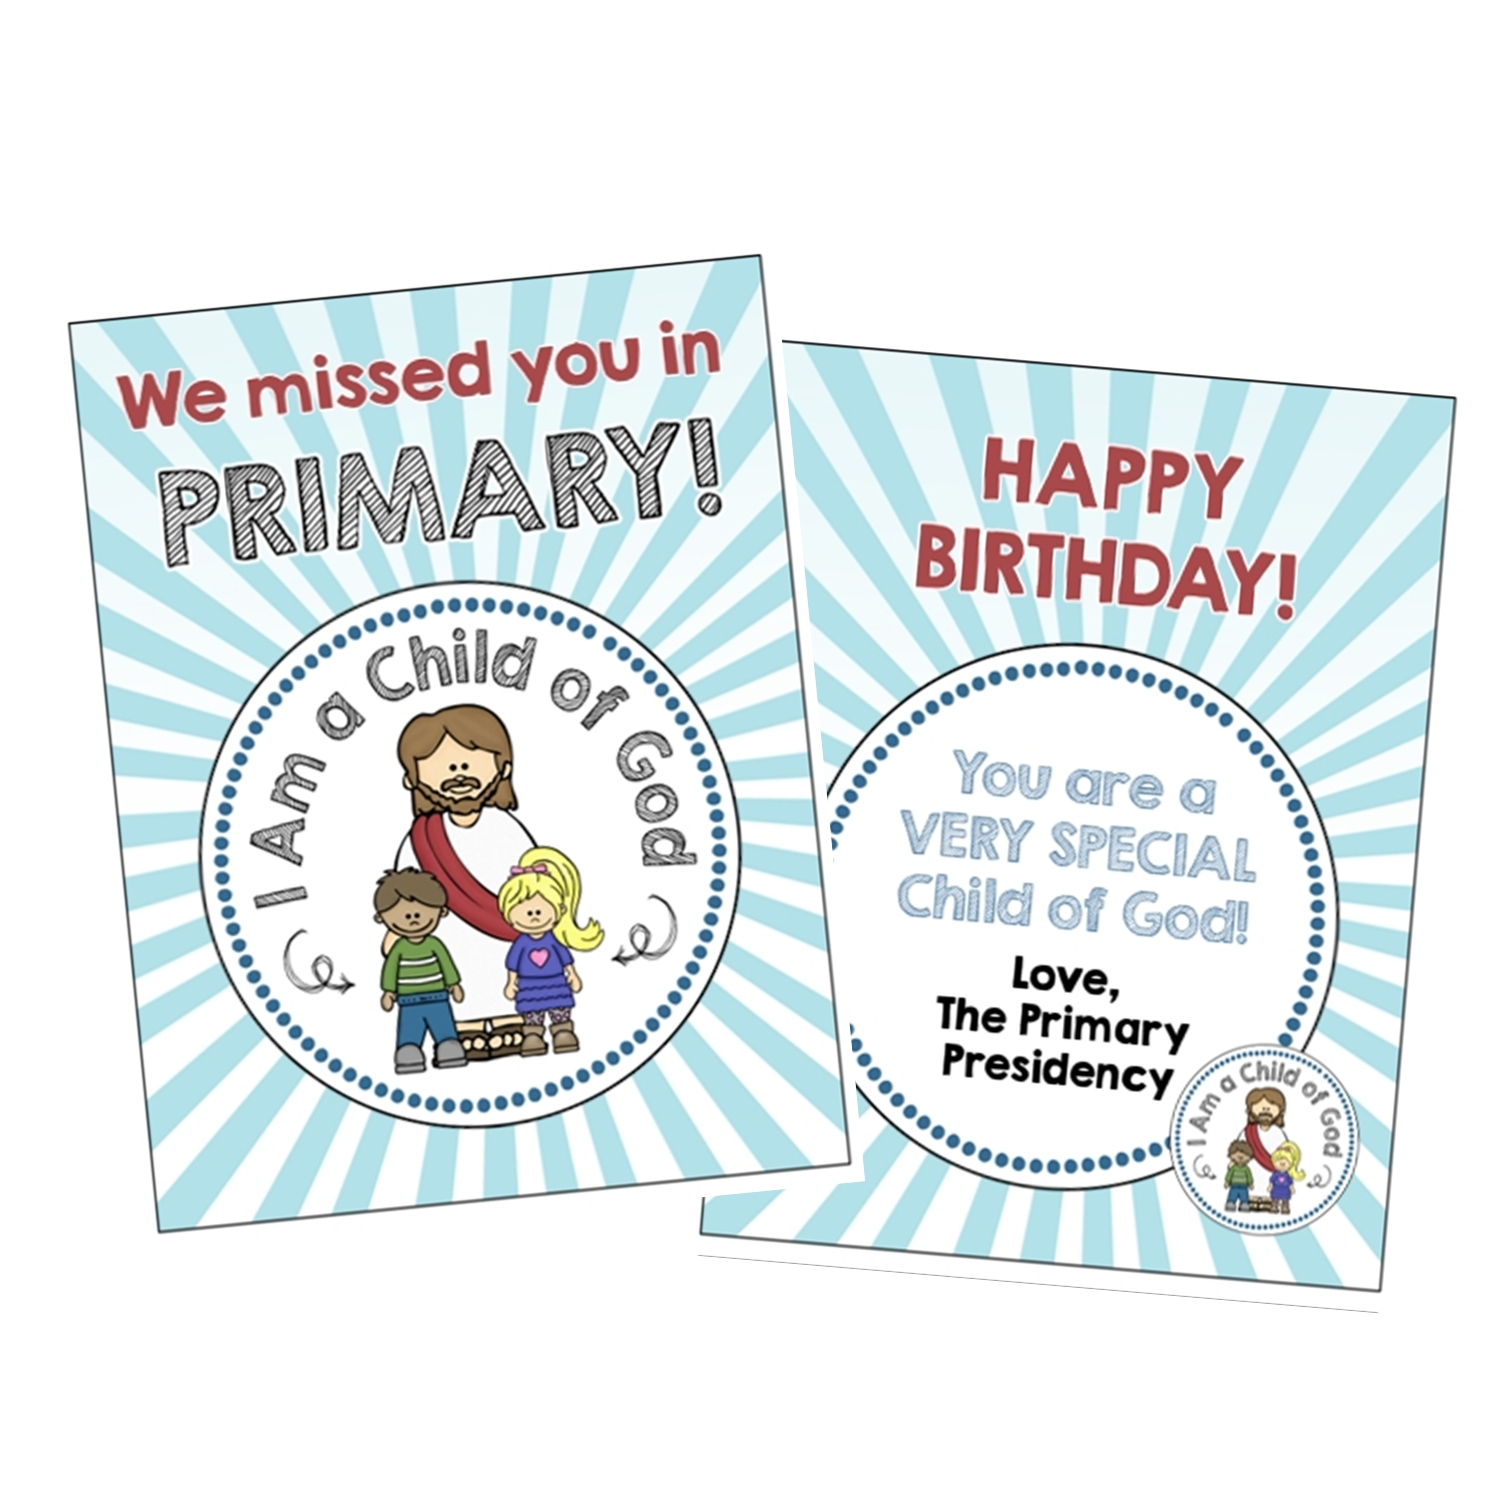 i am a child of god birthday and miss you cards instant download